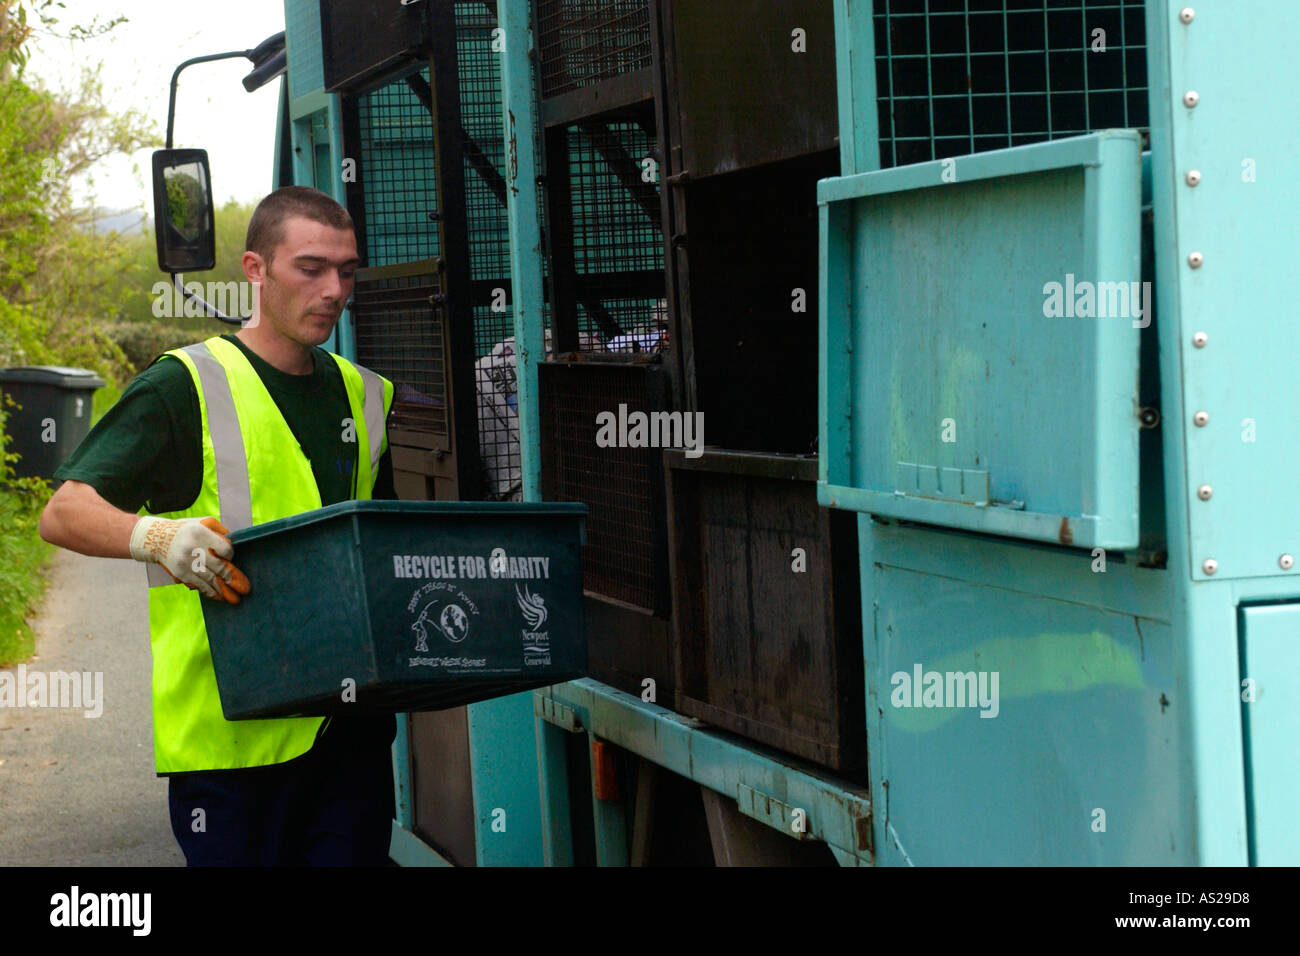 Boxes containing recyclable domestic rubbish collected by Wastesavers community recycling group from households Stock Photo